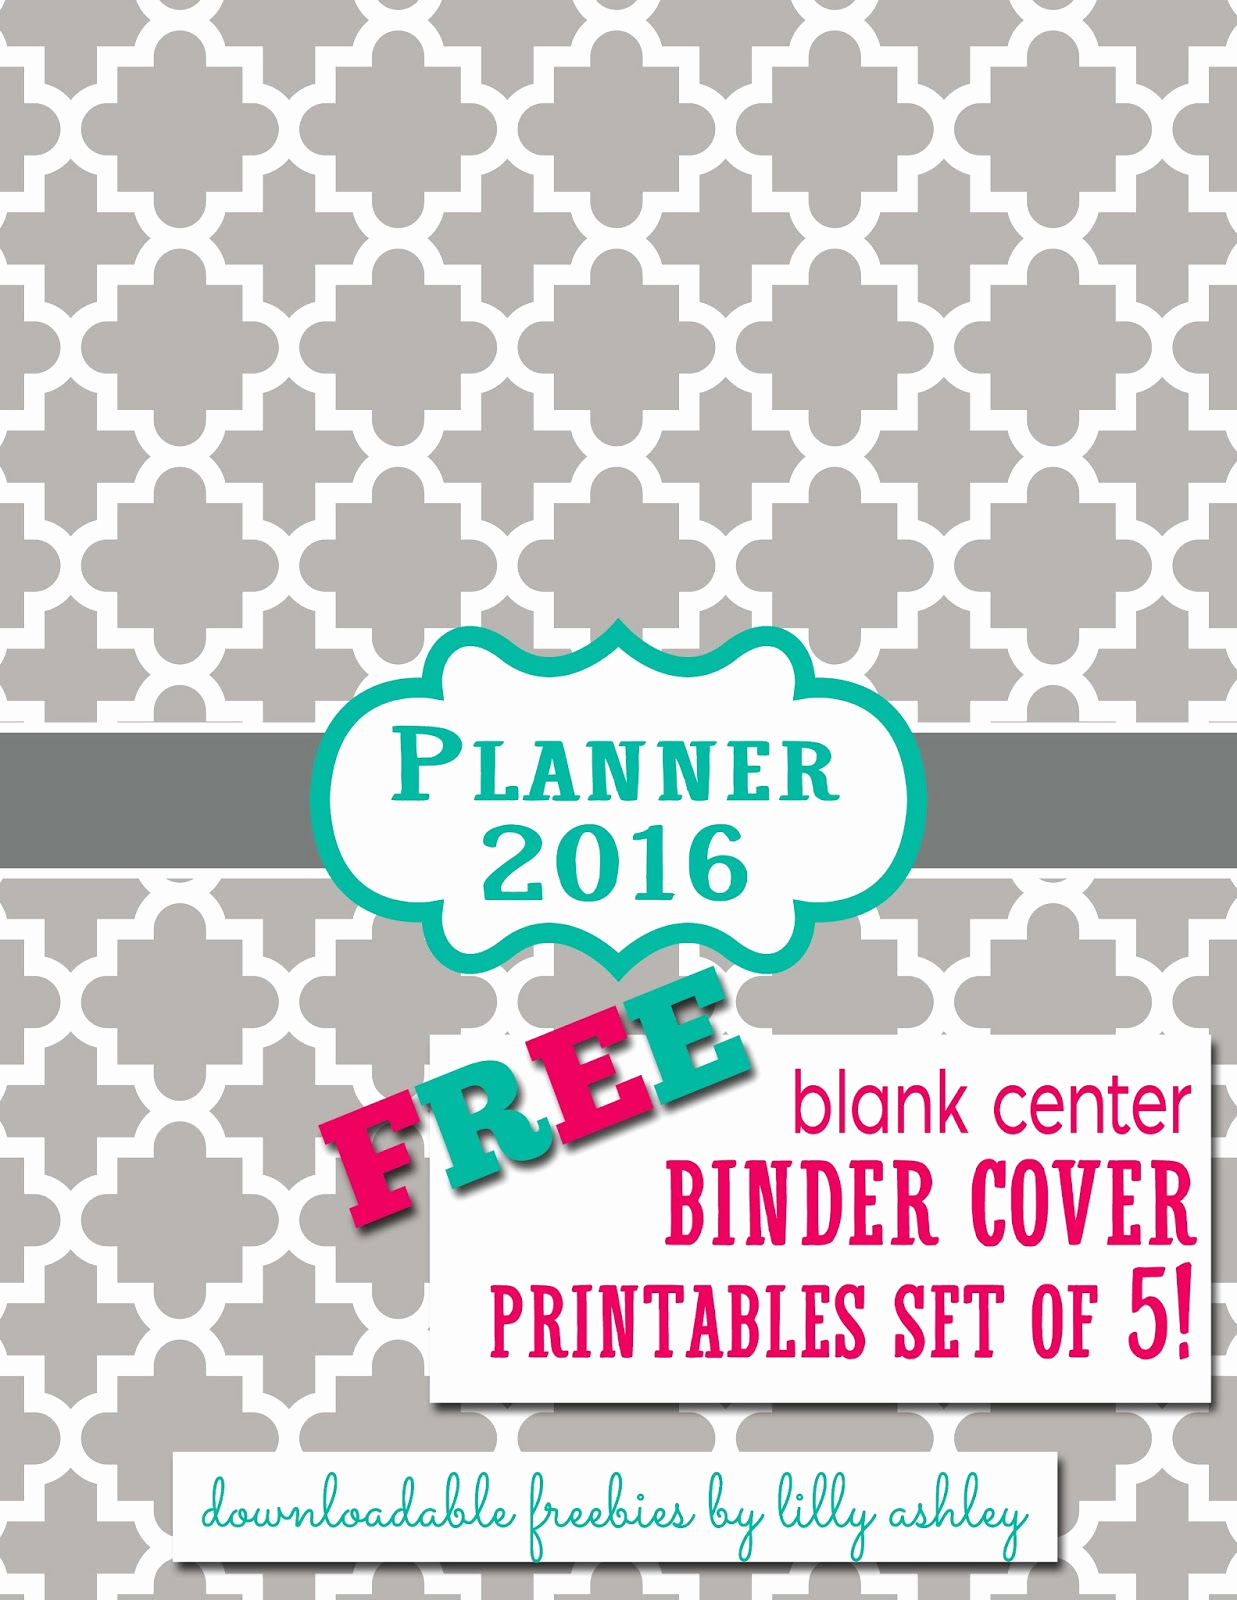 Free Editable Printable Binder Covers Luxury Make It Create by Lillyashley Freebie Downloads Free